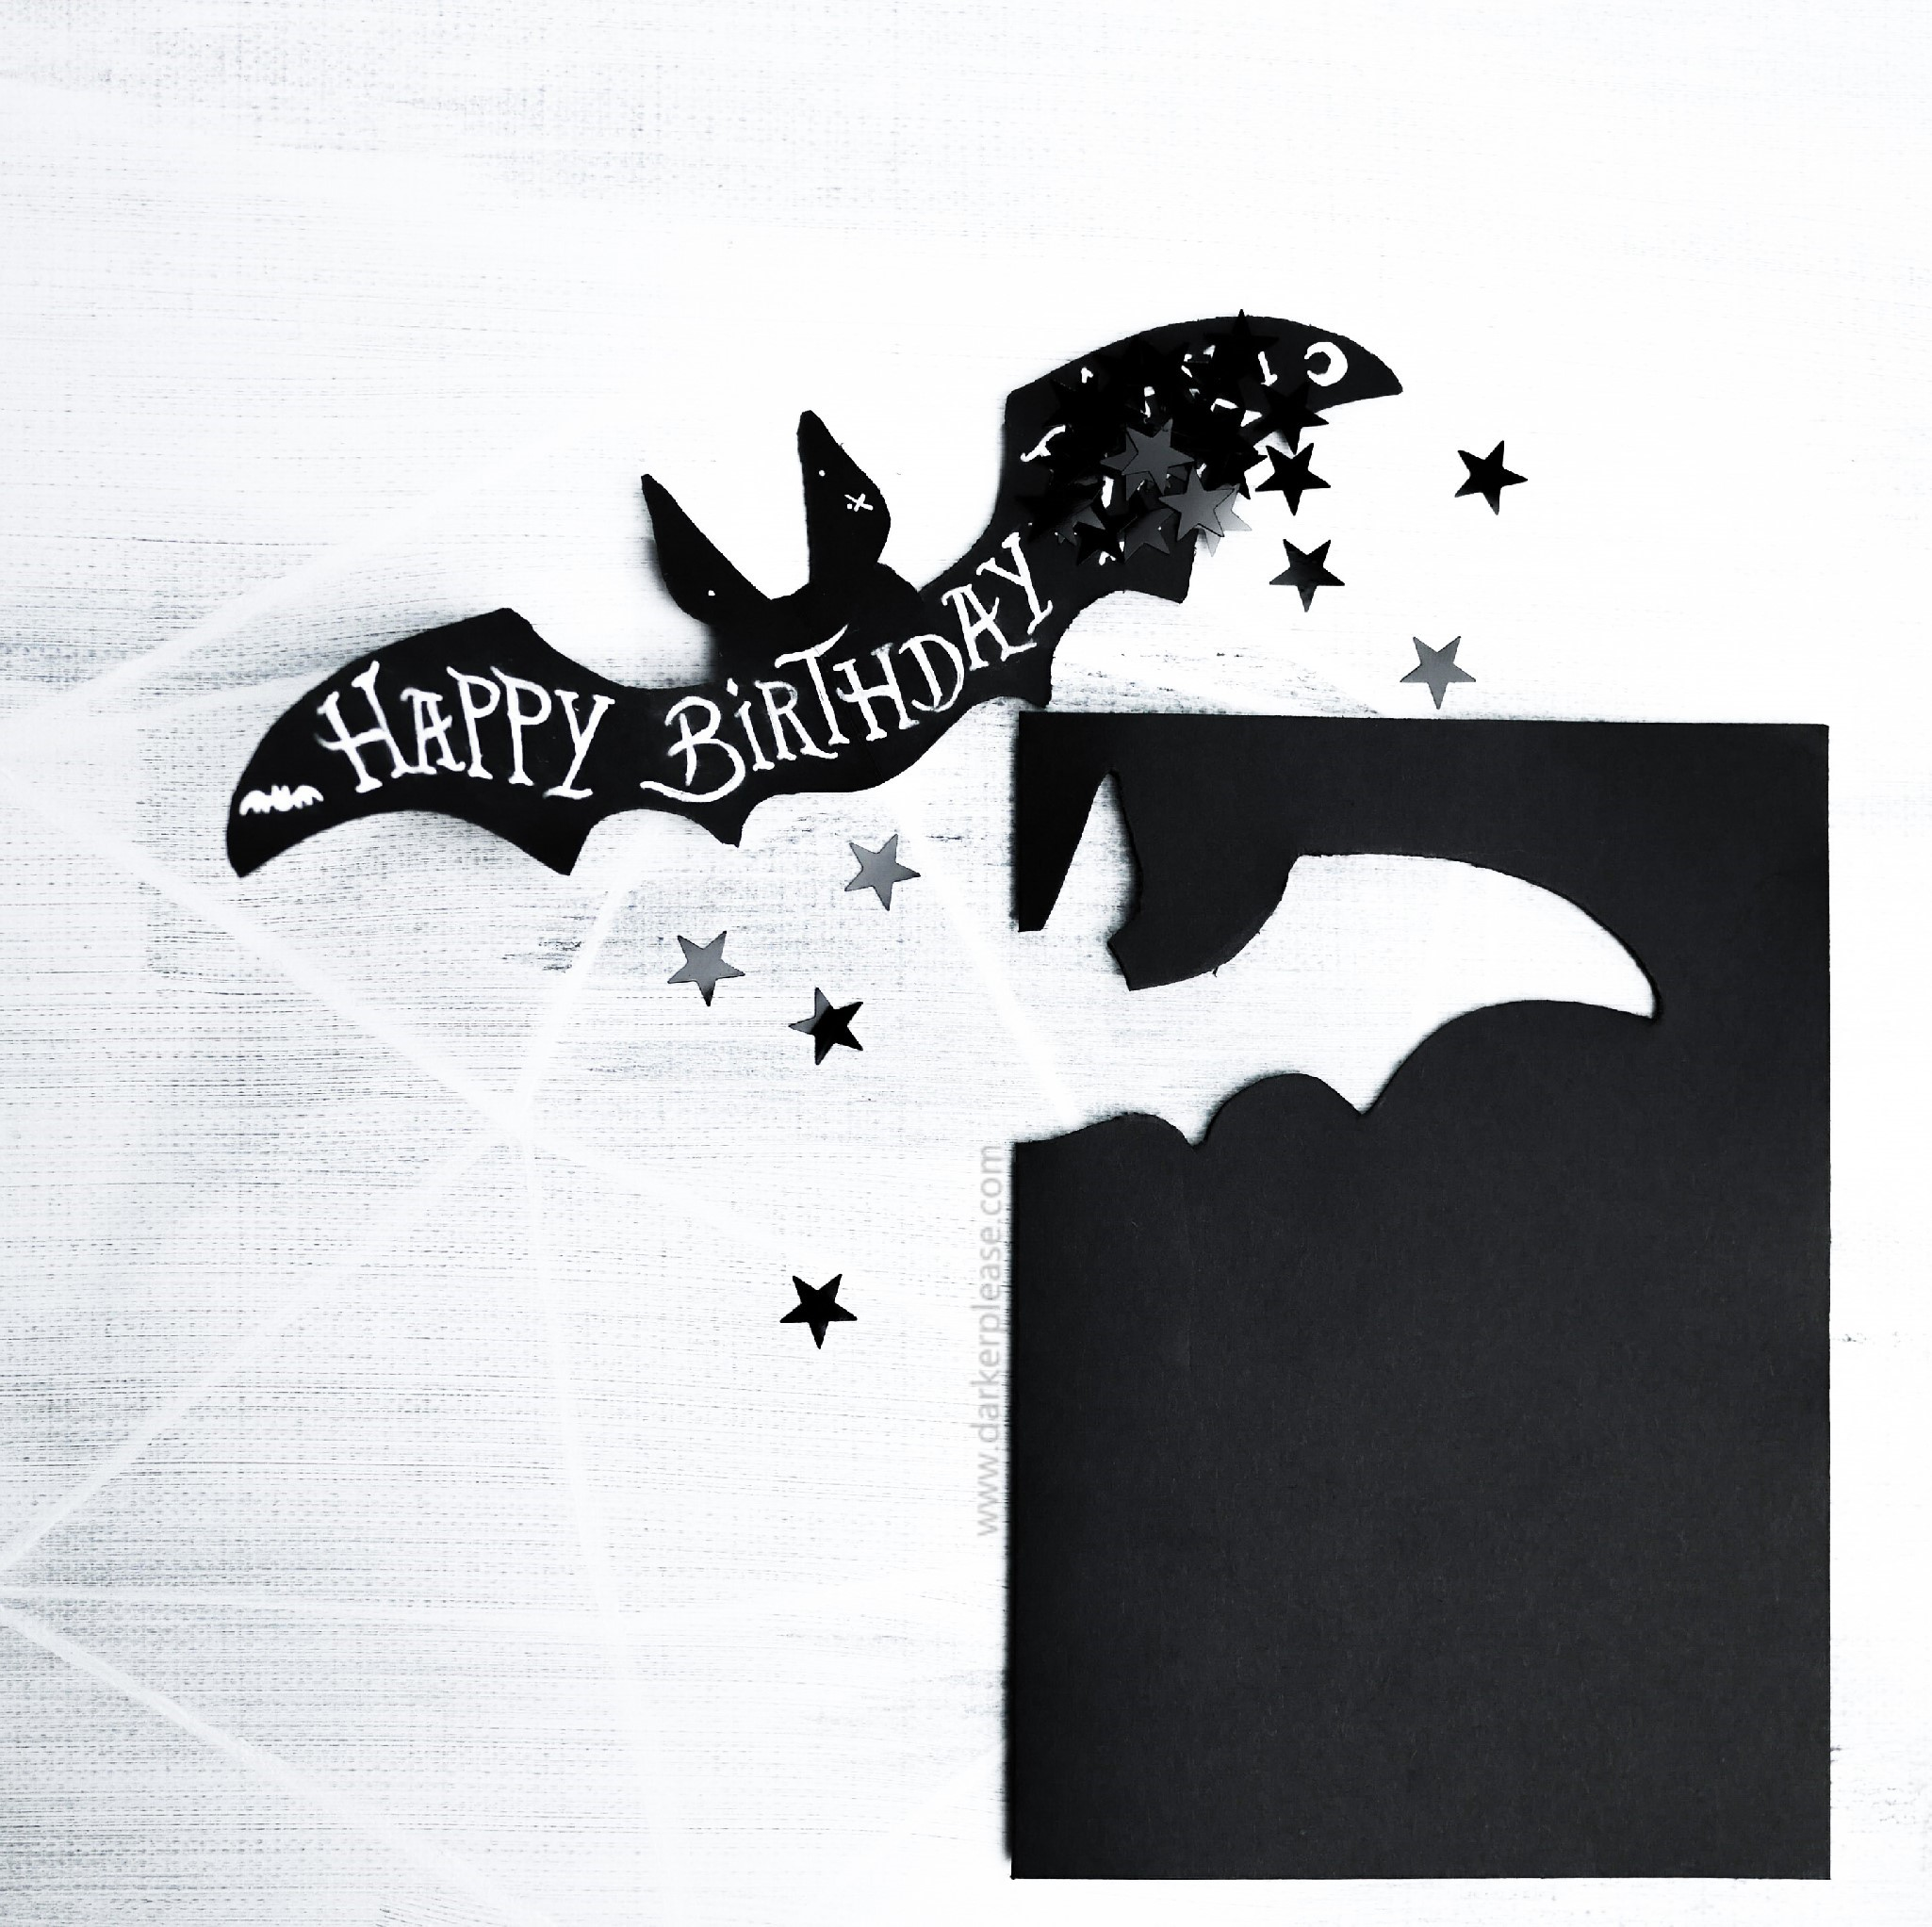 bat birthday card ; bat-birthday-card-20161114